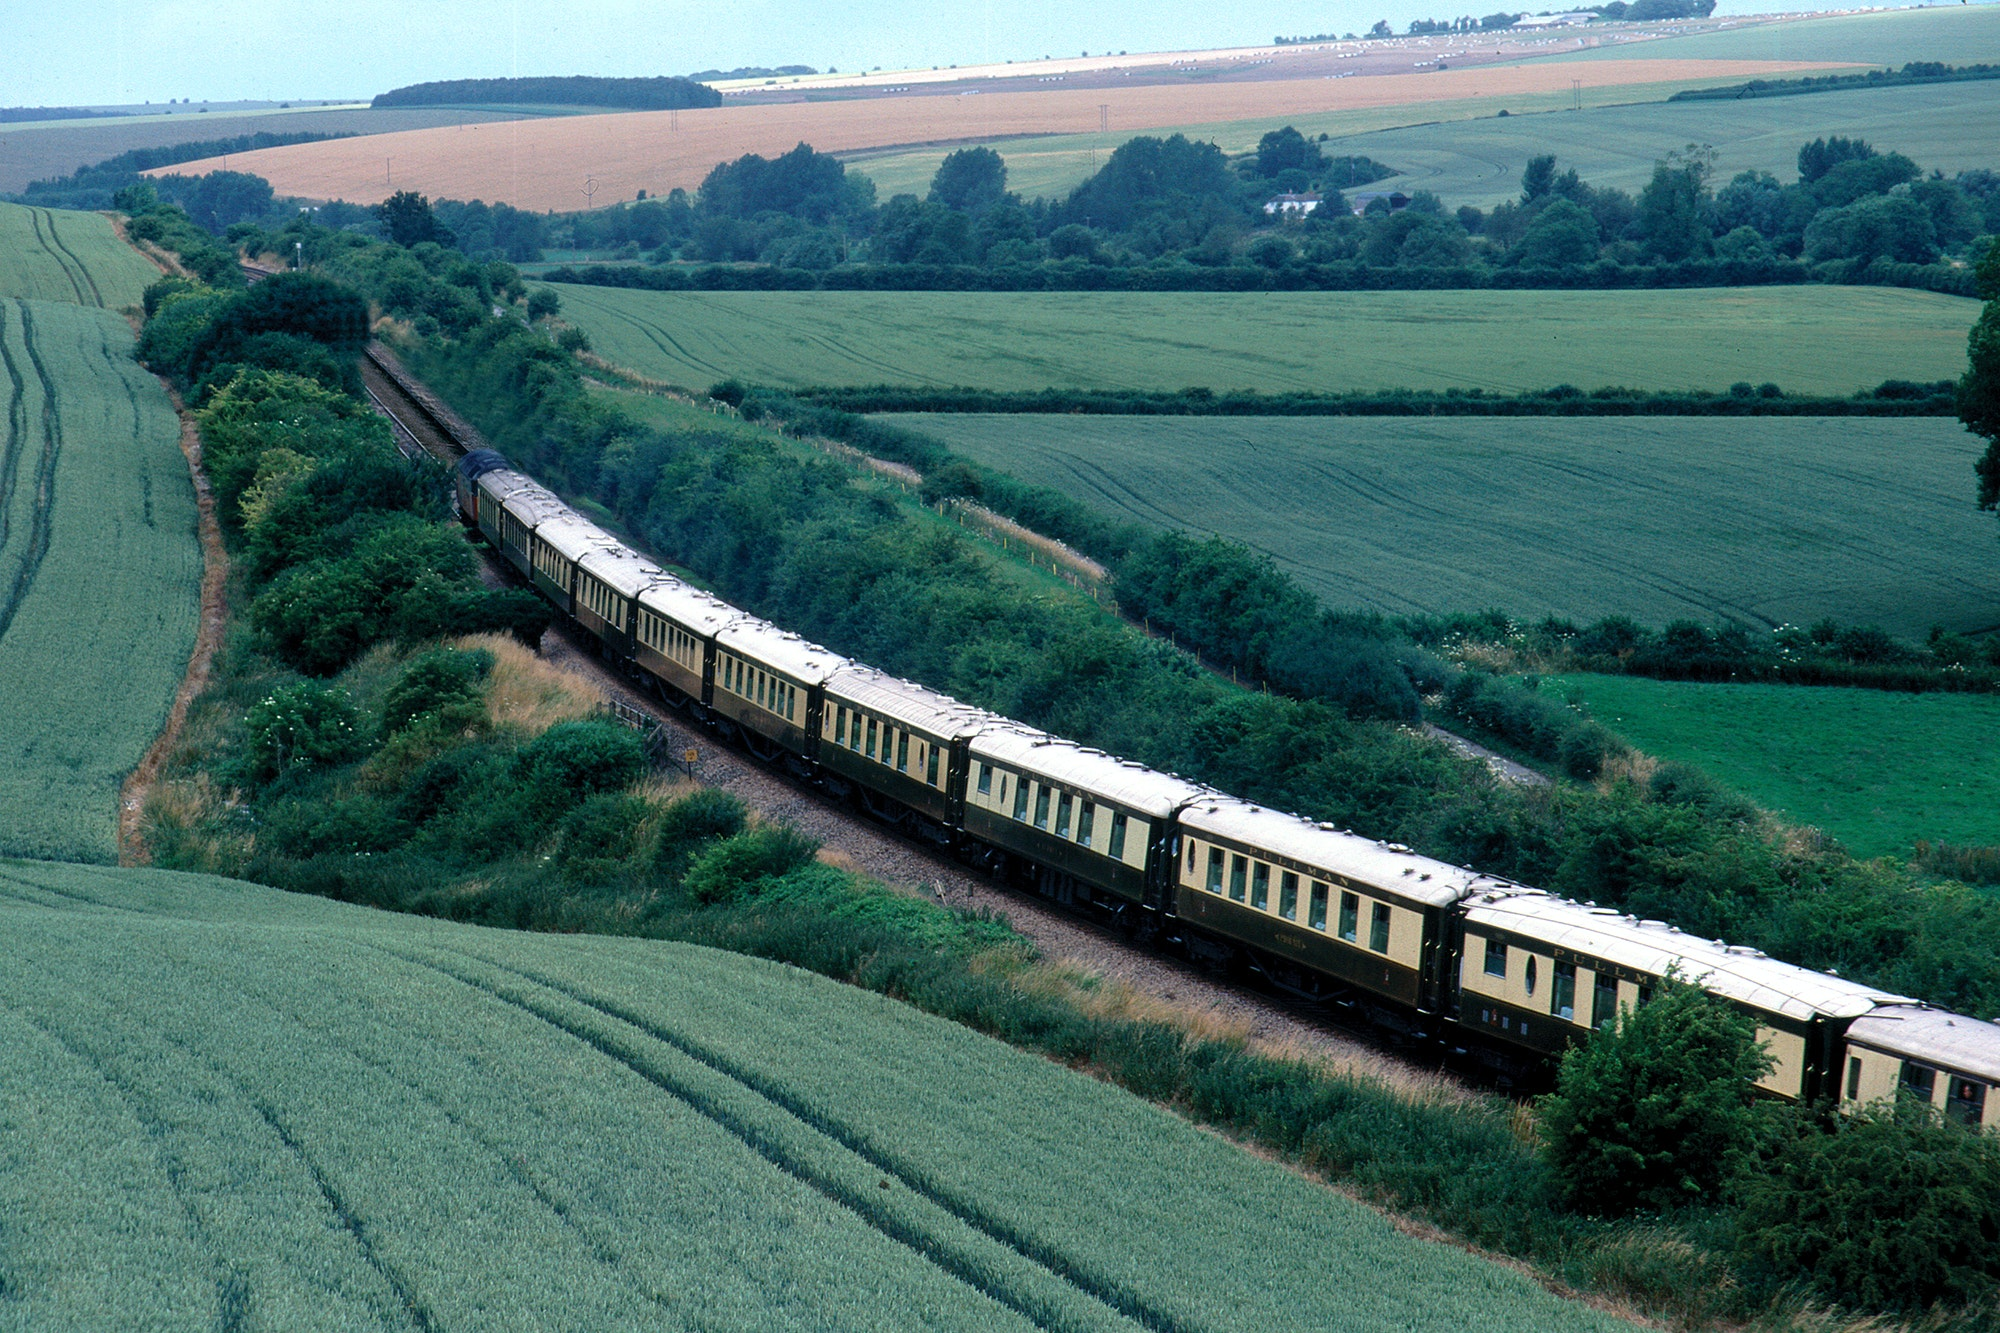 The 1920s-era Belmond British Pullman travels throughout the English countryside this spring.